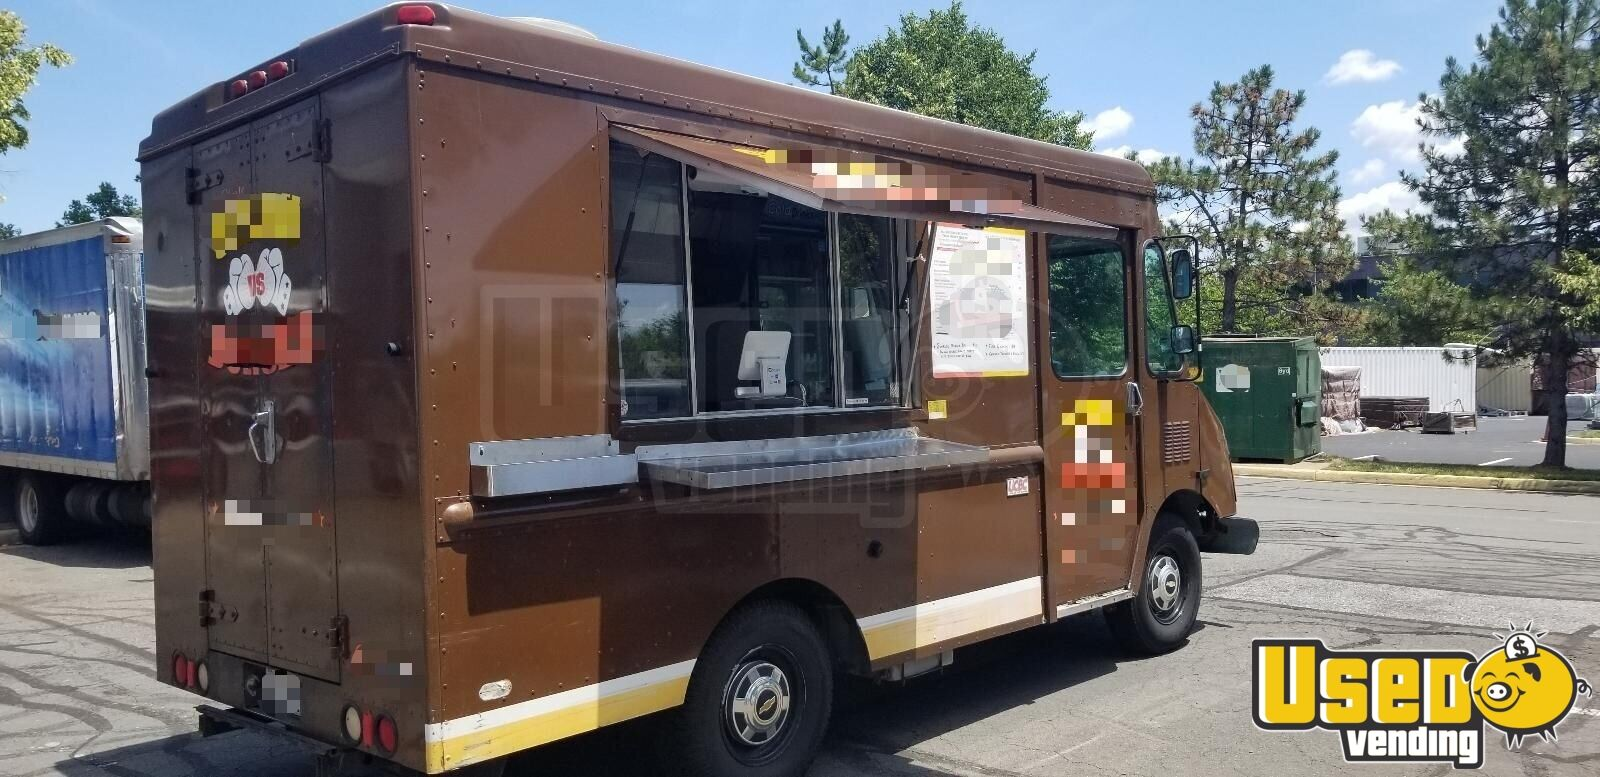 Details About Food Truck Used Mobile Kitchen For Sale In Virginia